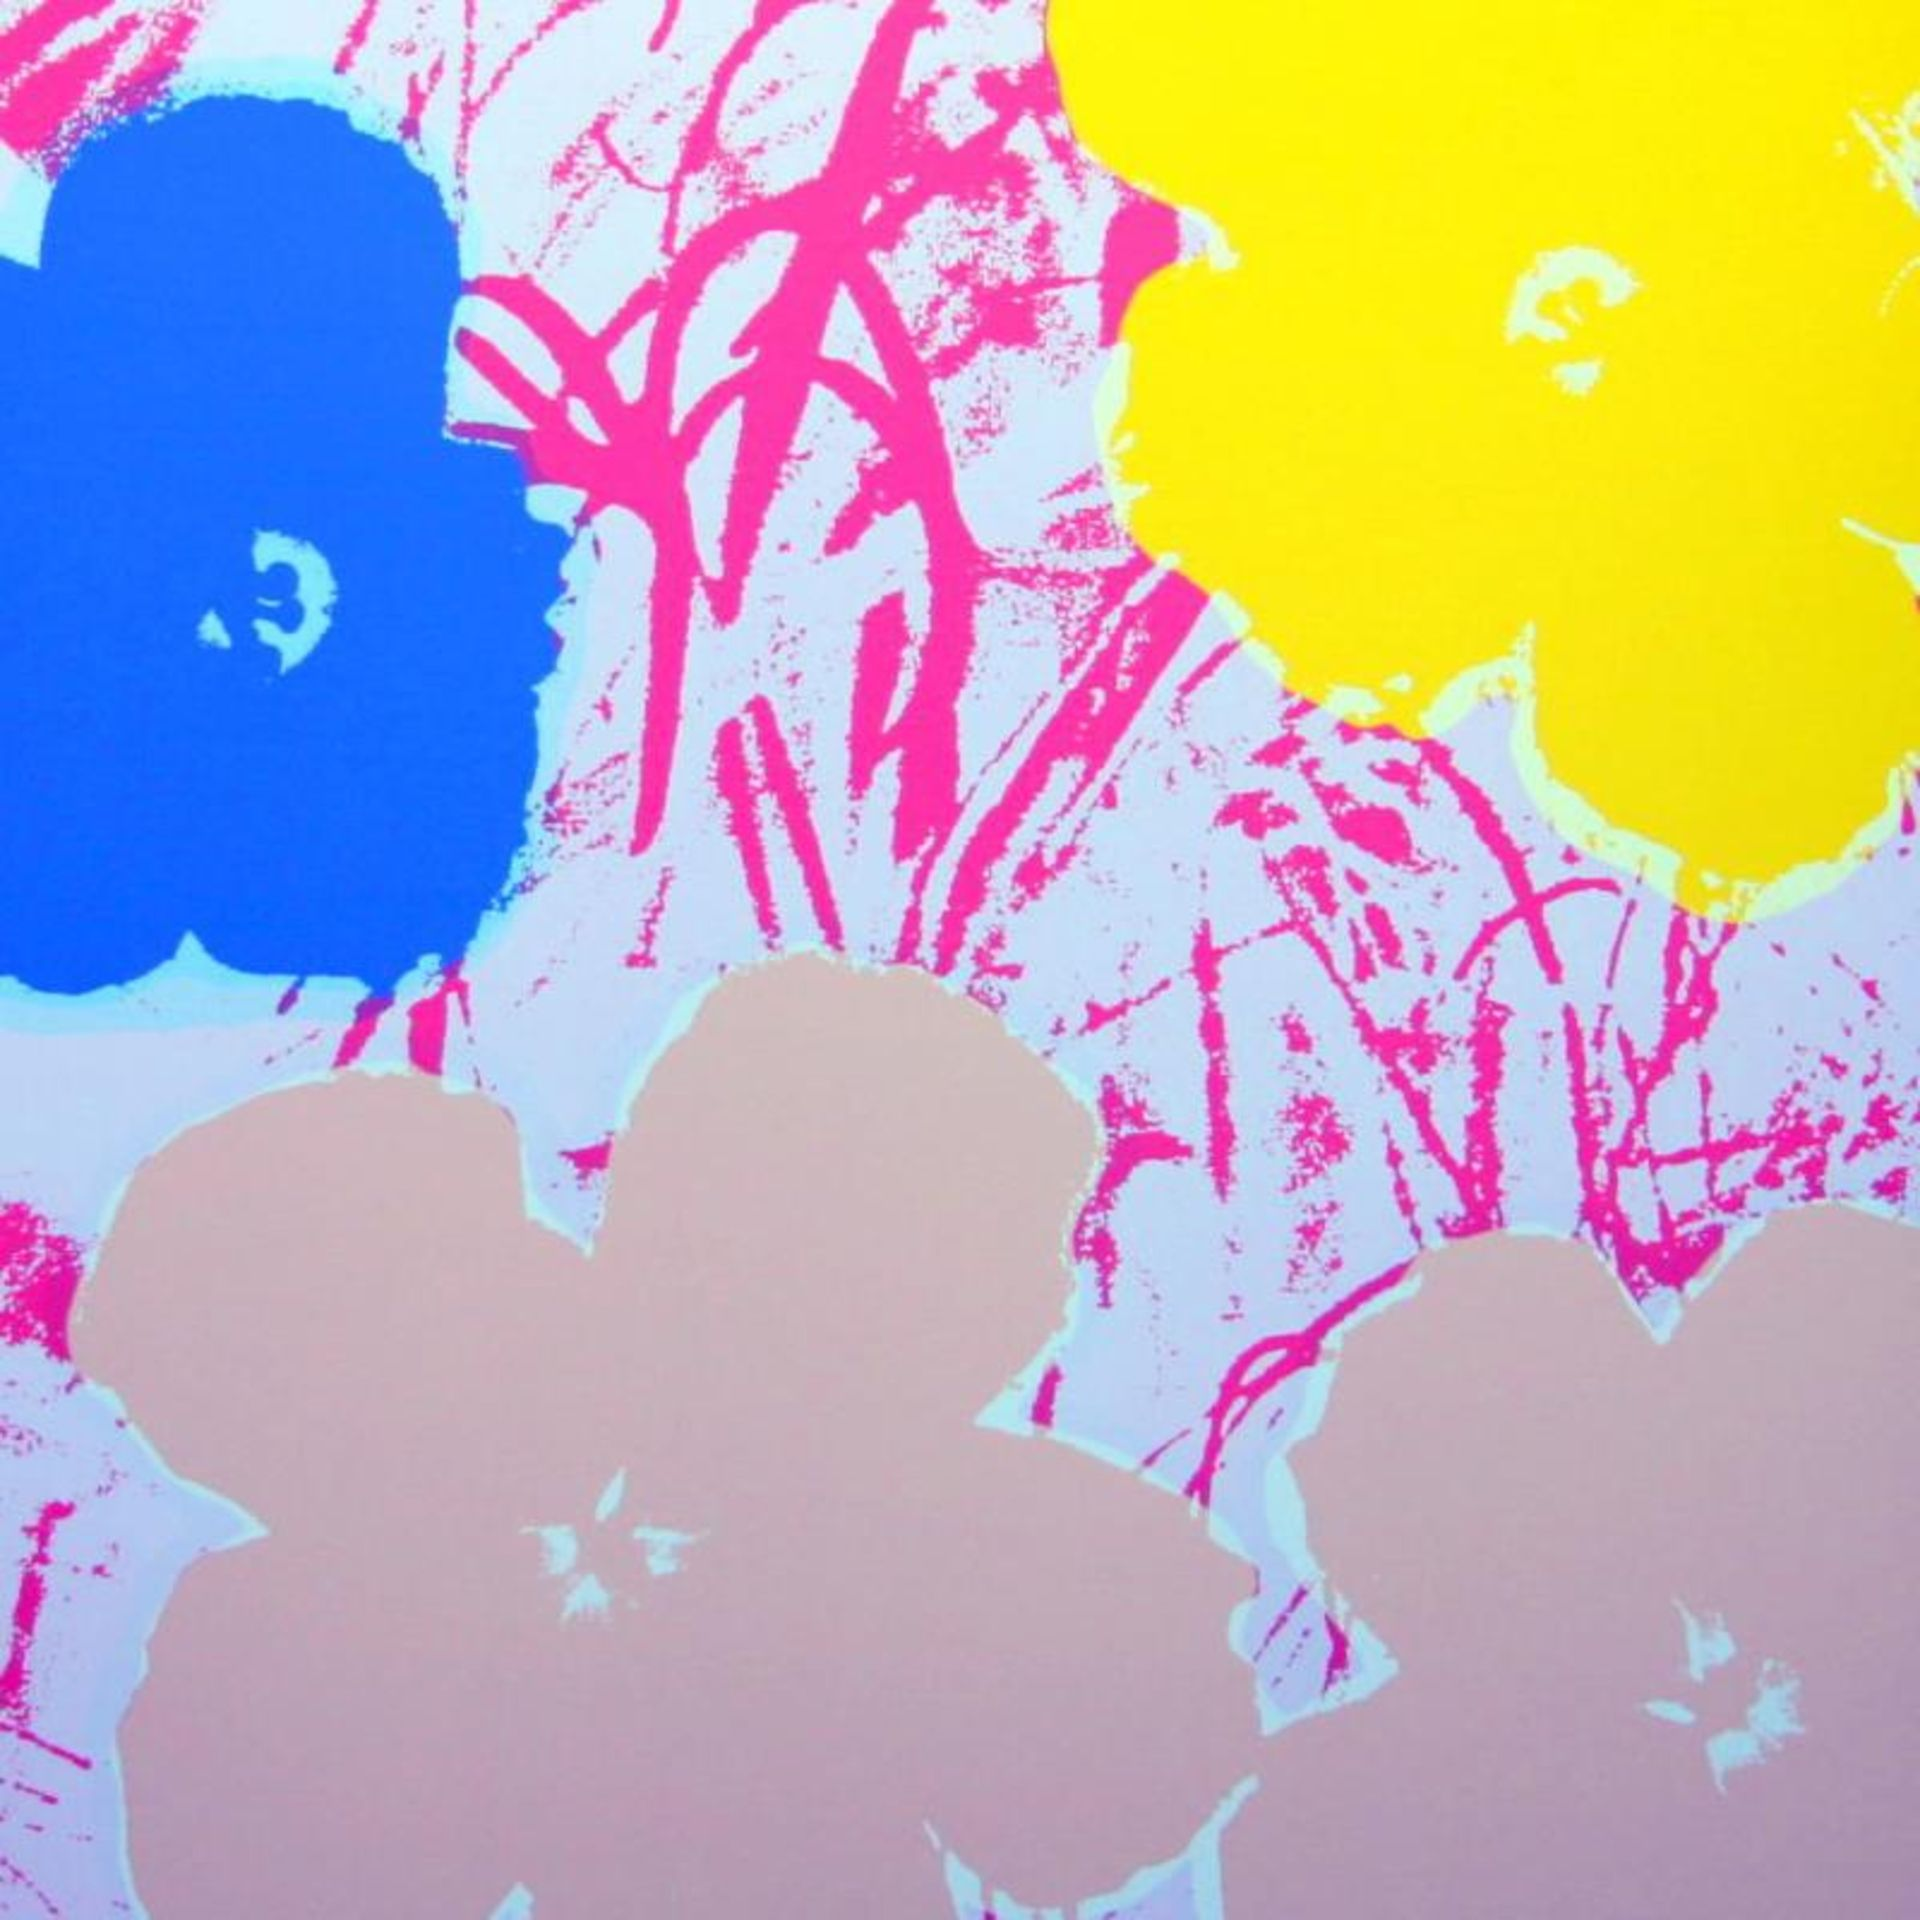 Flowers 11.70 by Warhol, Andy - Image 2 of 2